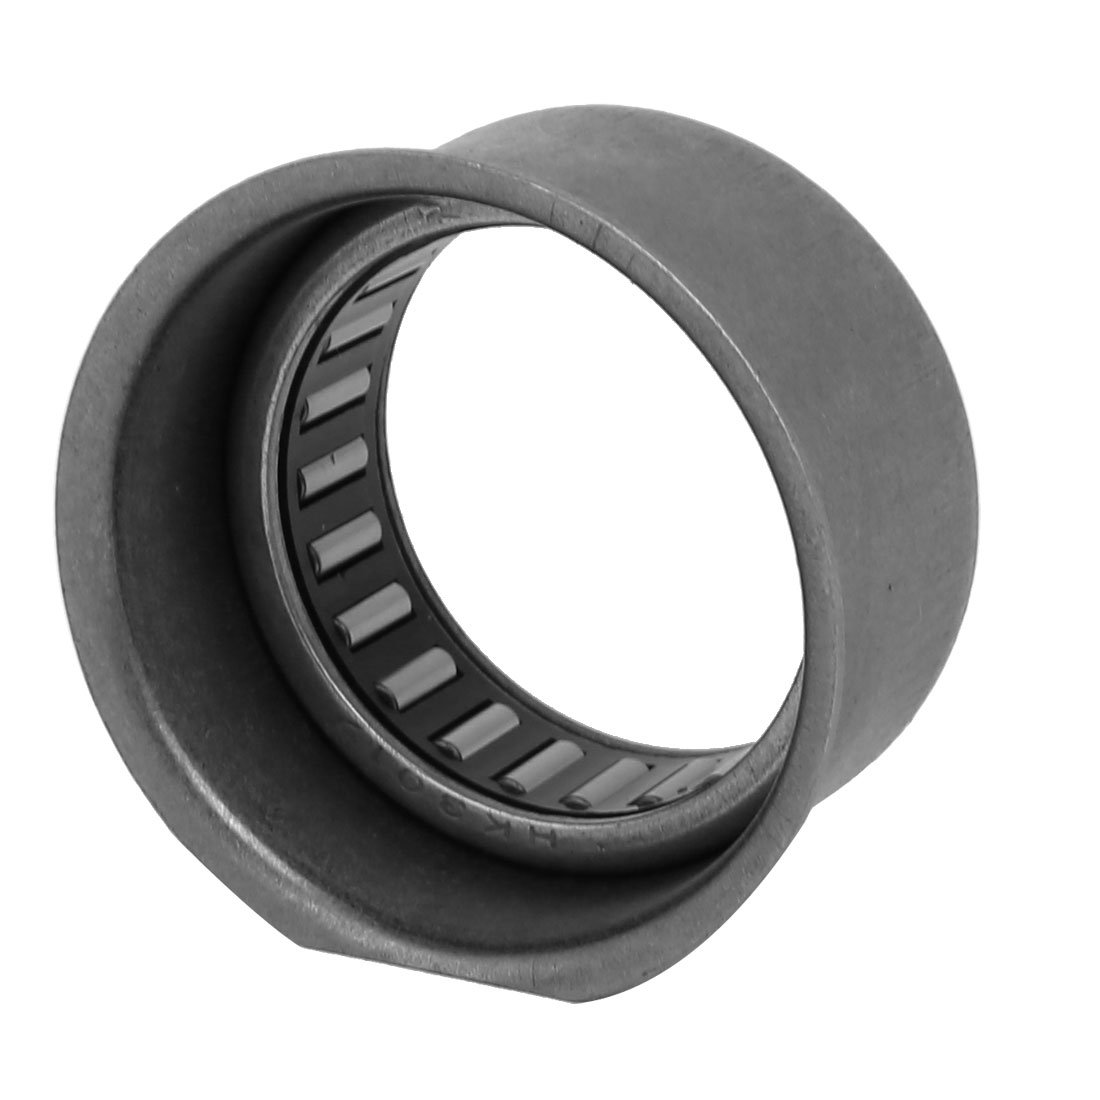 uxcell Inner Dia 30mm Needle Roller Bearing for Makita HR2470 Electric Hammer